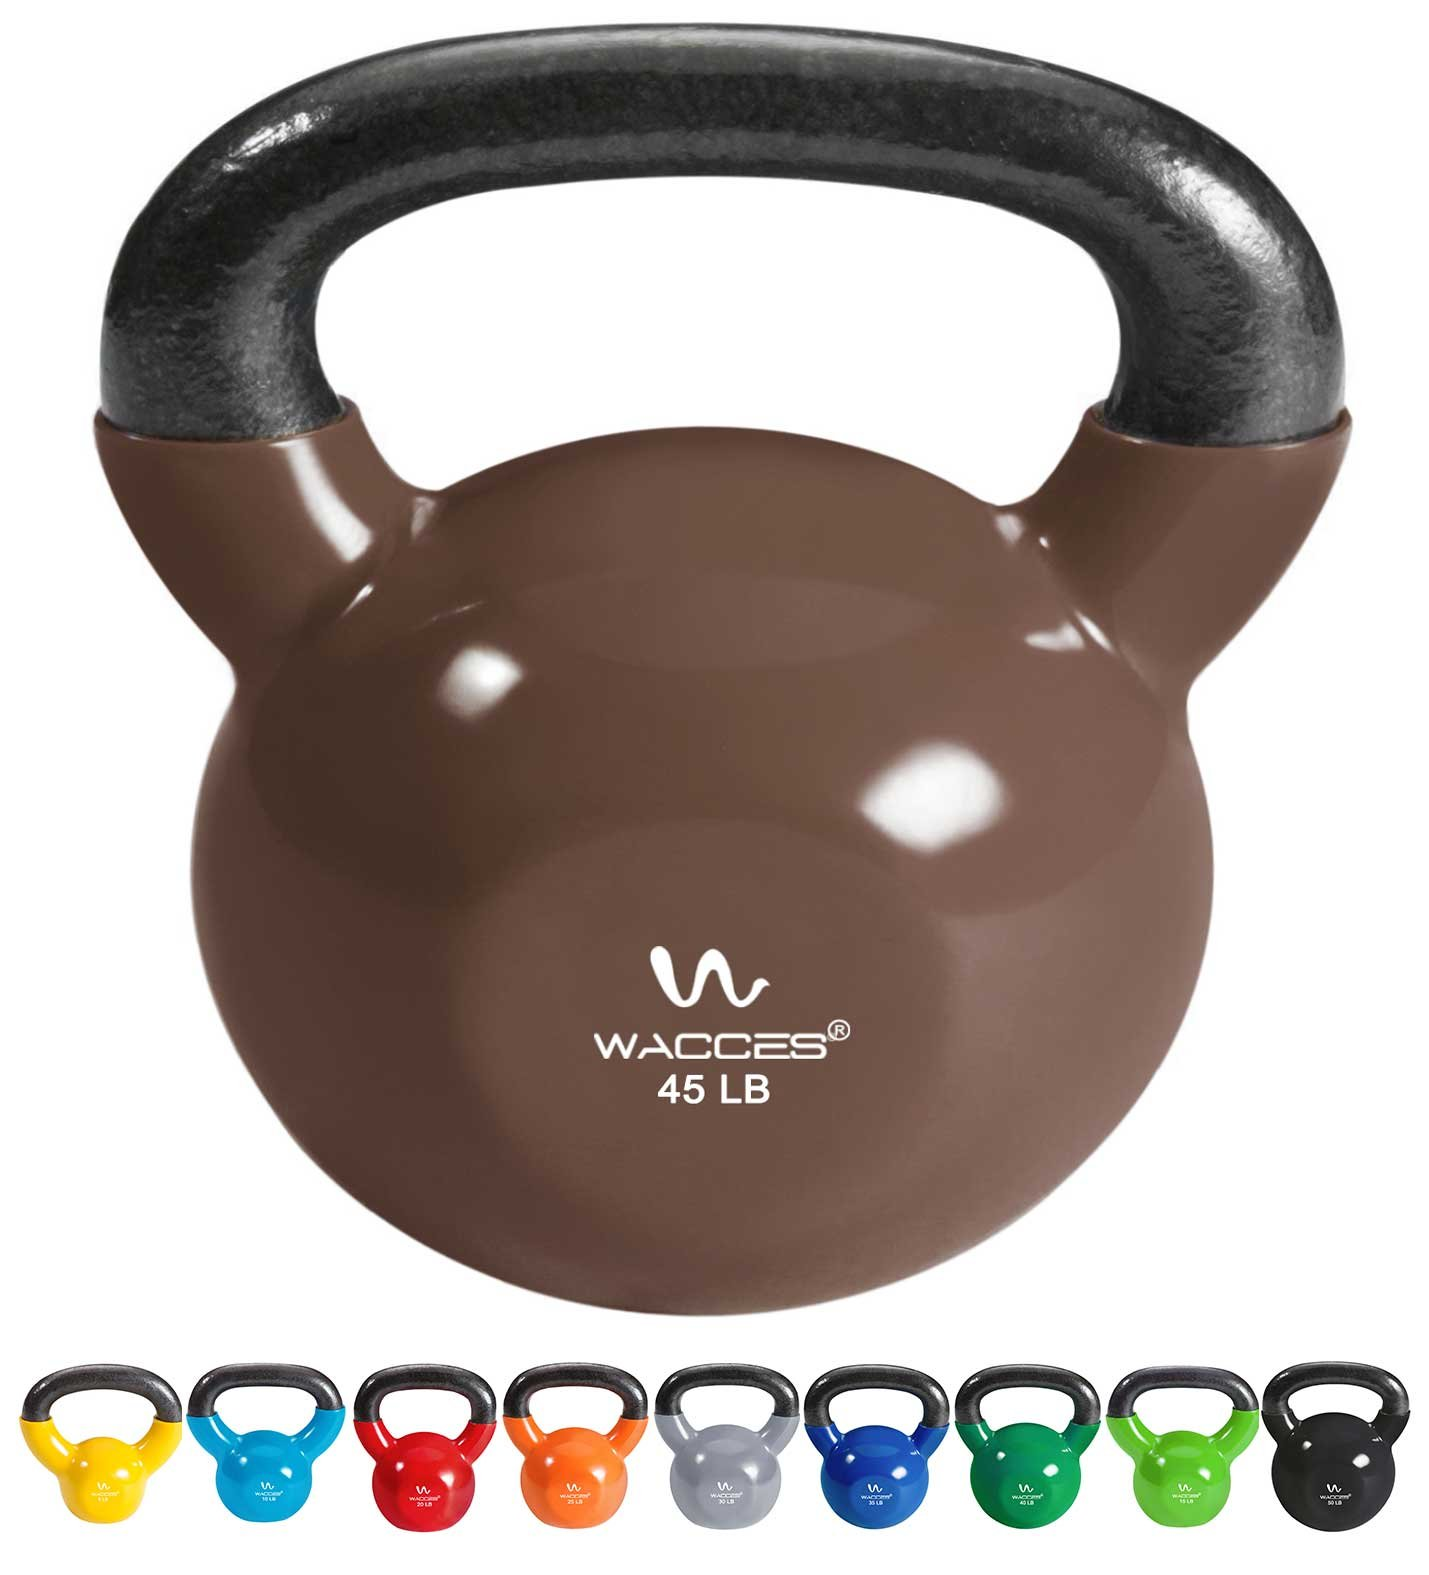 Wacces Single Vinyl Dipped Kettlebell for Croos Training, Home Exercise, Workout 45LB